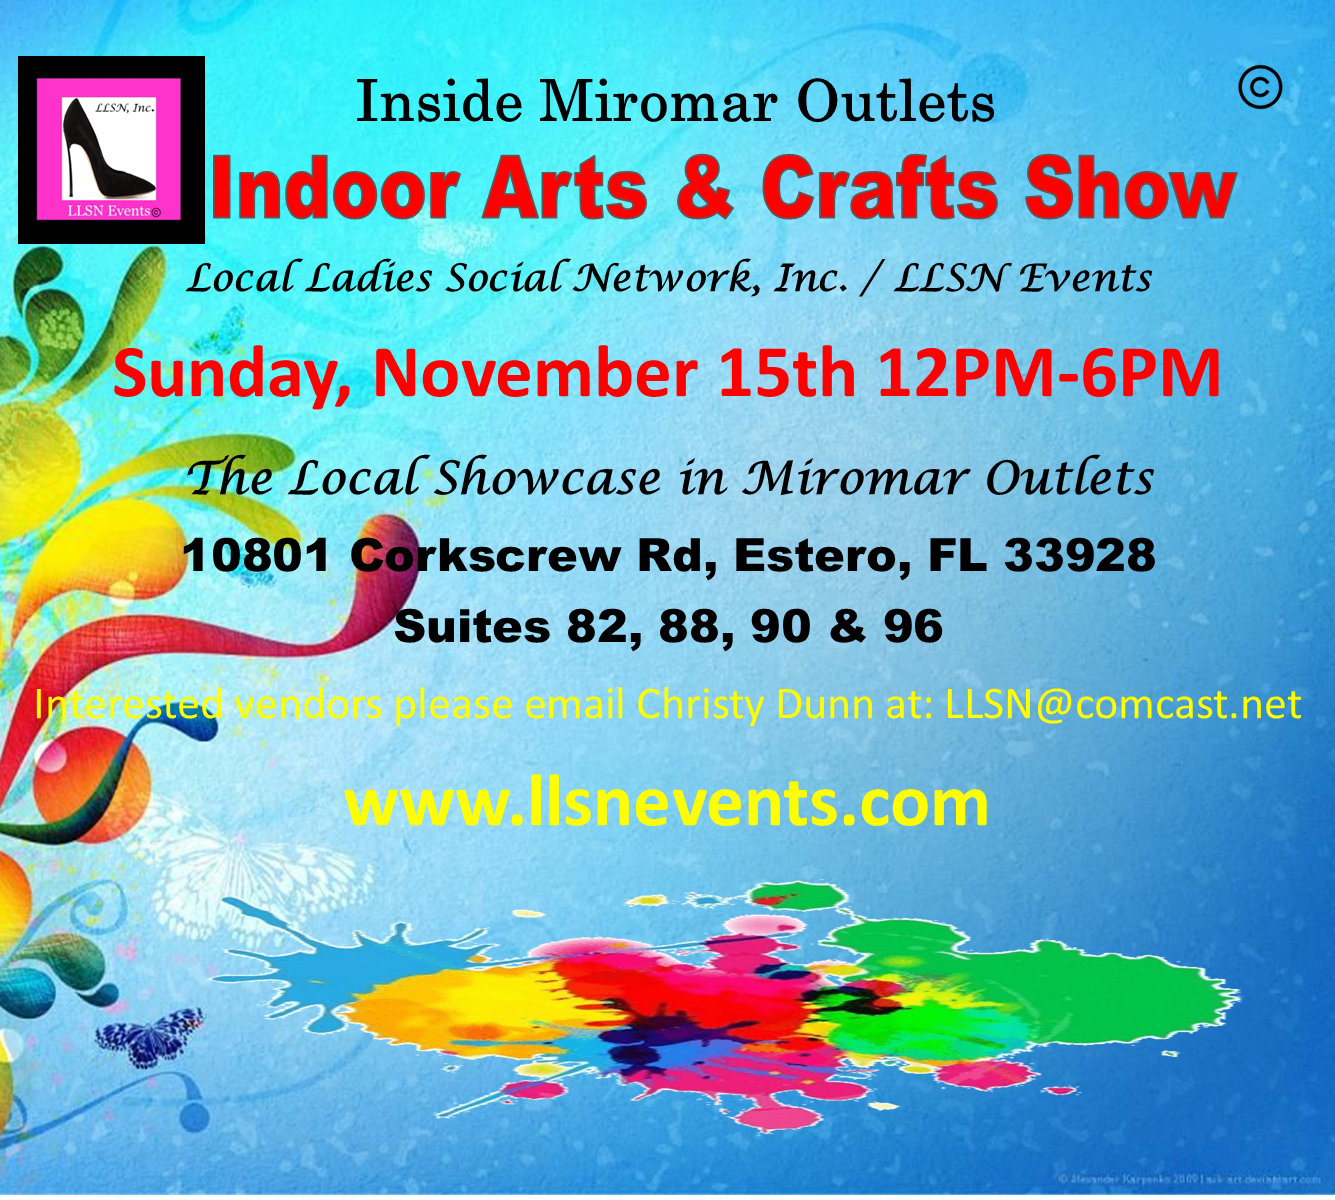 Indoor Arts & Crafts Show- Sunday, November 15th 12pm-6pm.